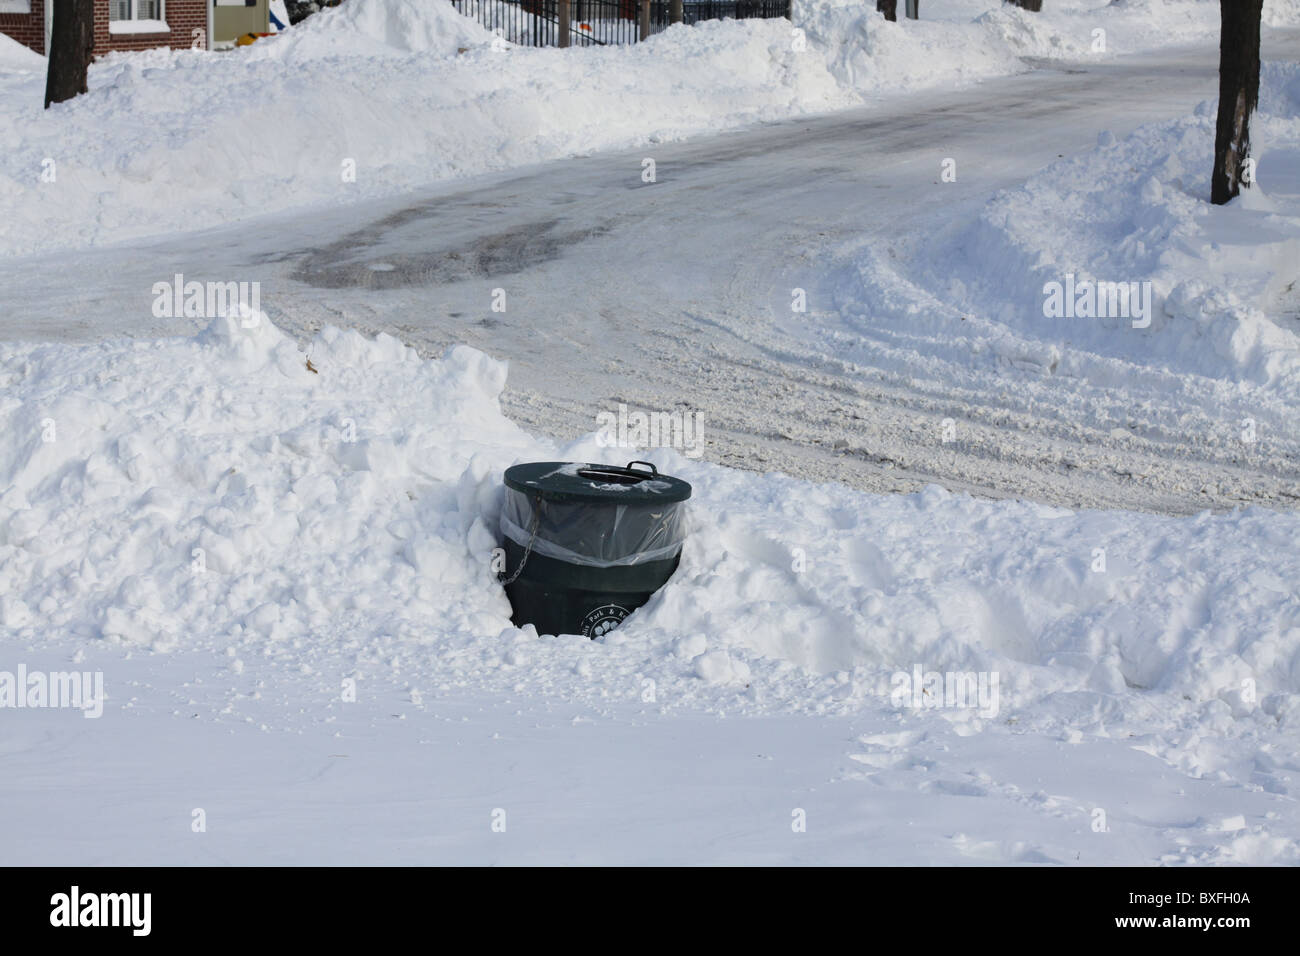 A trash can buried in snow on a street corner in Minneapolis, Minnesota. - Stock Image